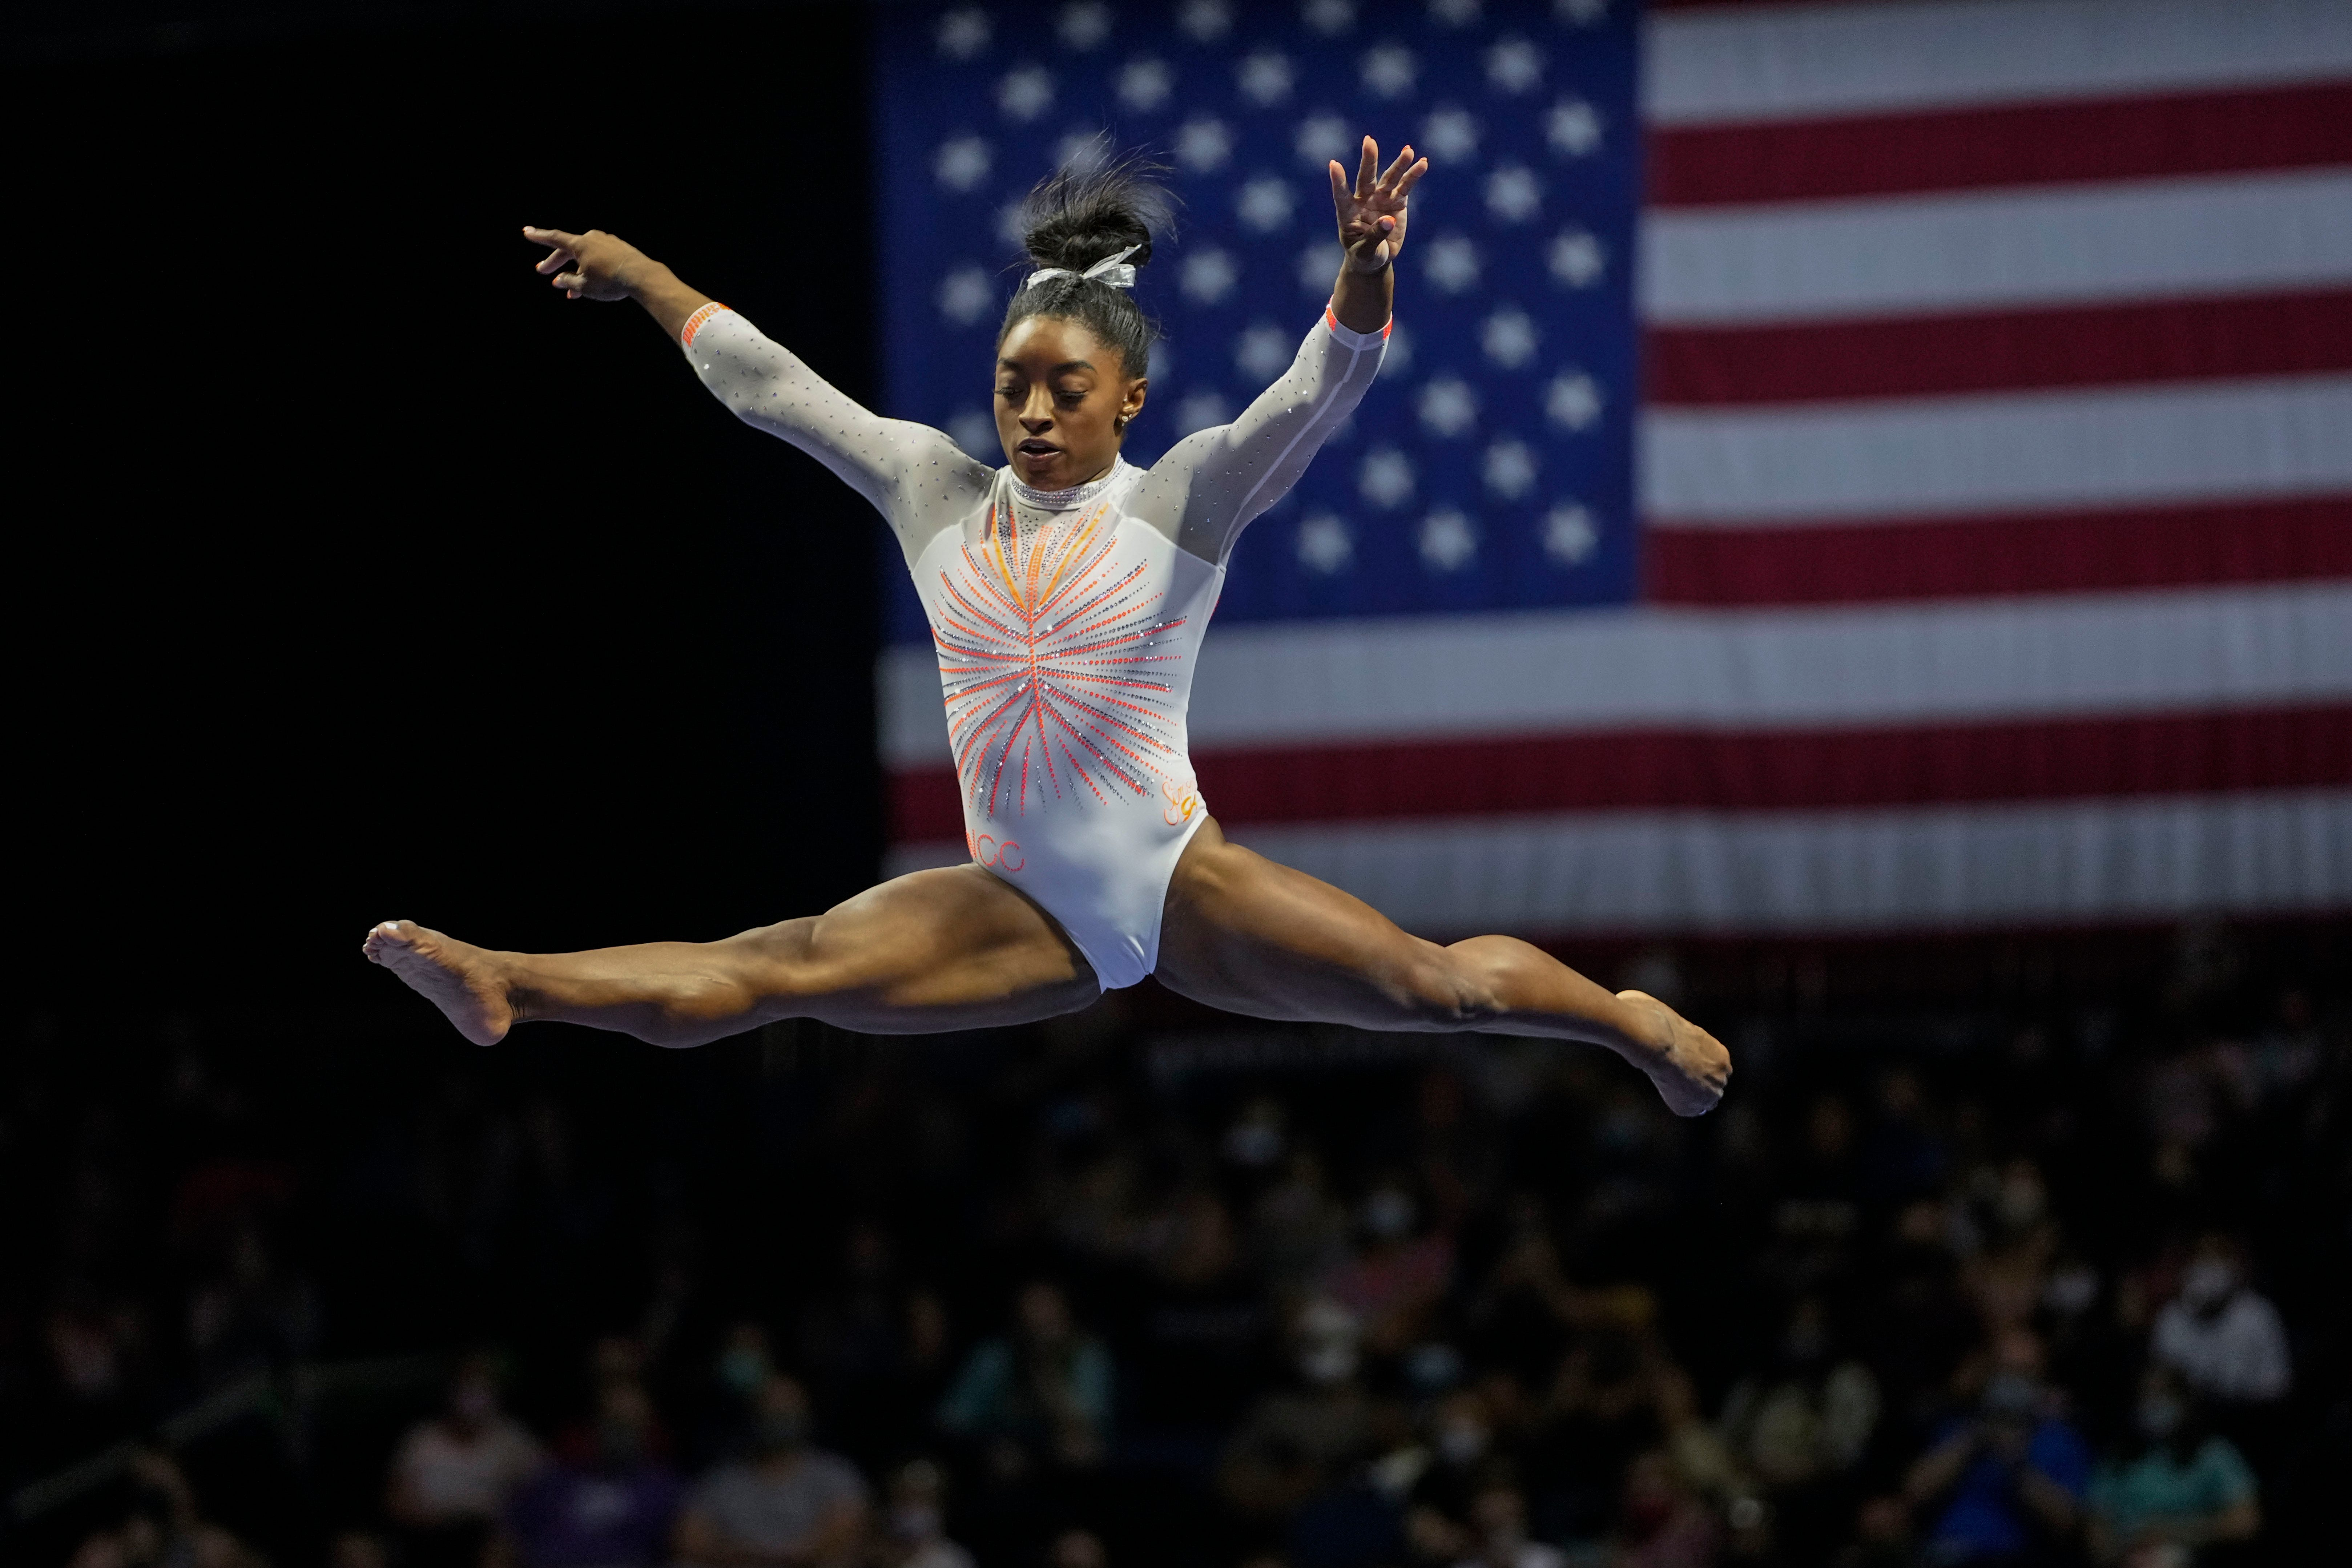 Simone Biles Makes History by Landing Yurchenko Double Pike Vault in Competition at U.S. Classic